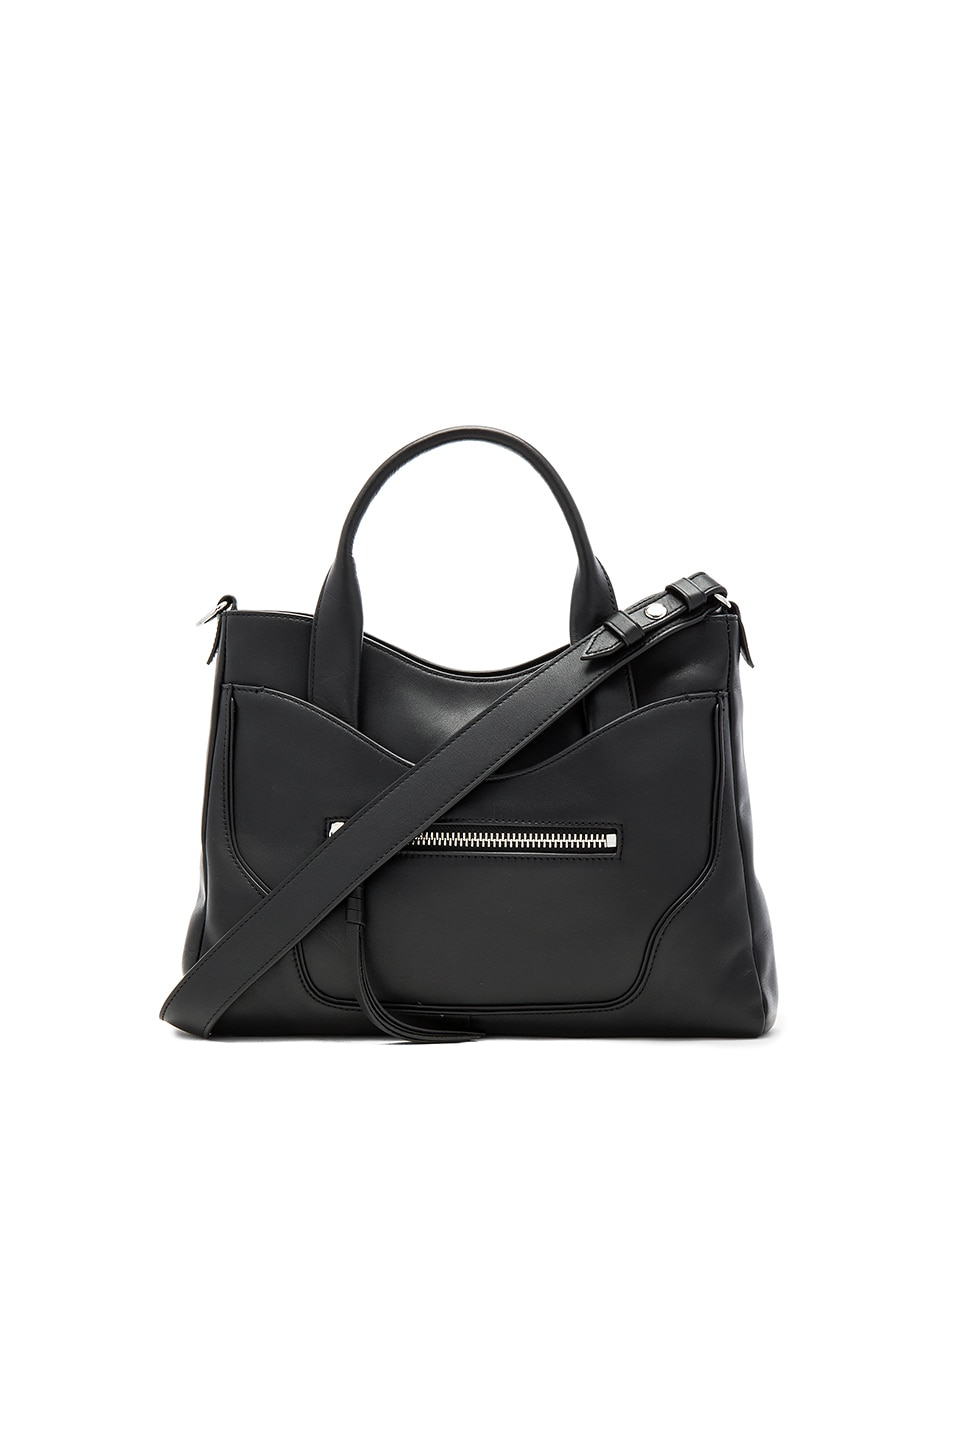 Andie Satchel Bag by Elizabeth and James